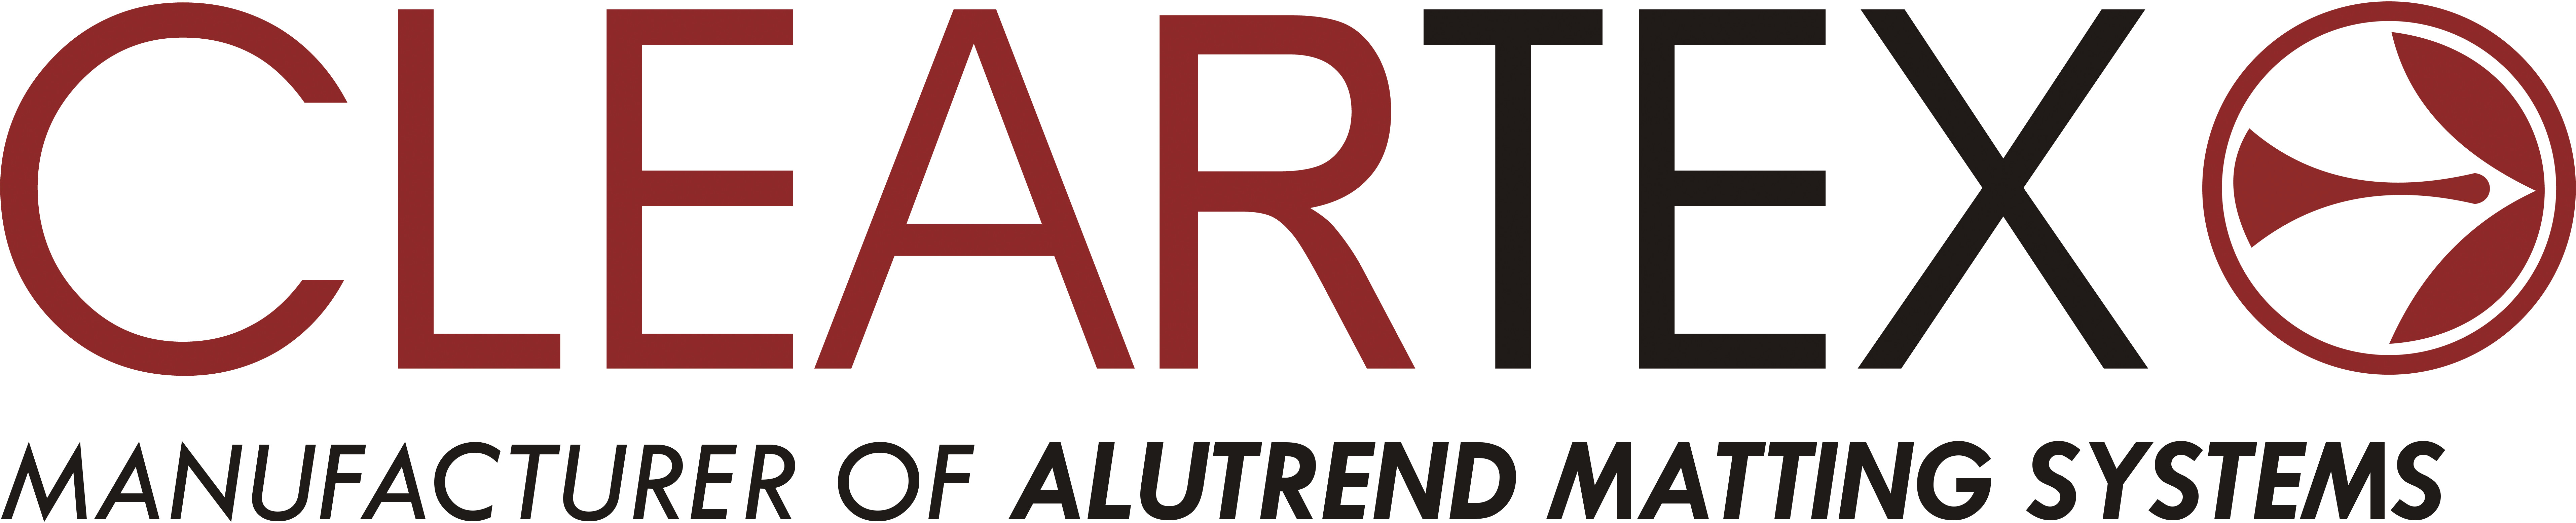 Cleartex-Manufacturer-of-Alutrend-Matting-Systems-2017